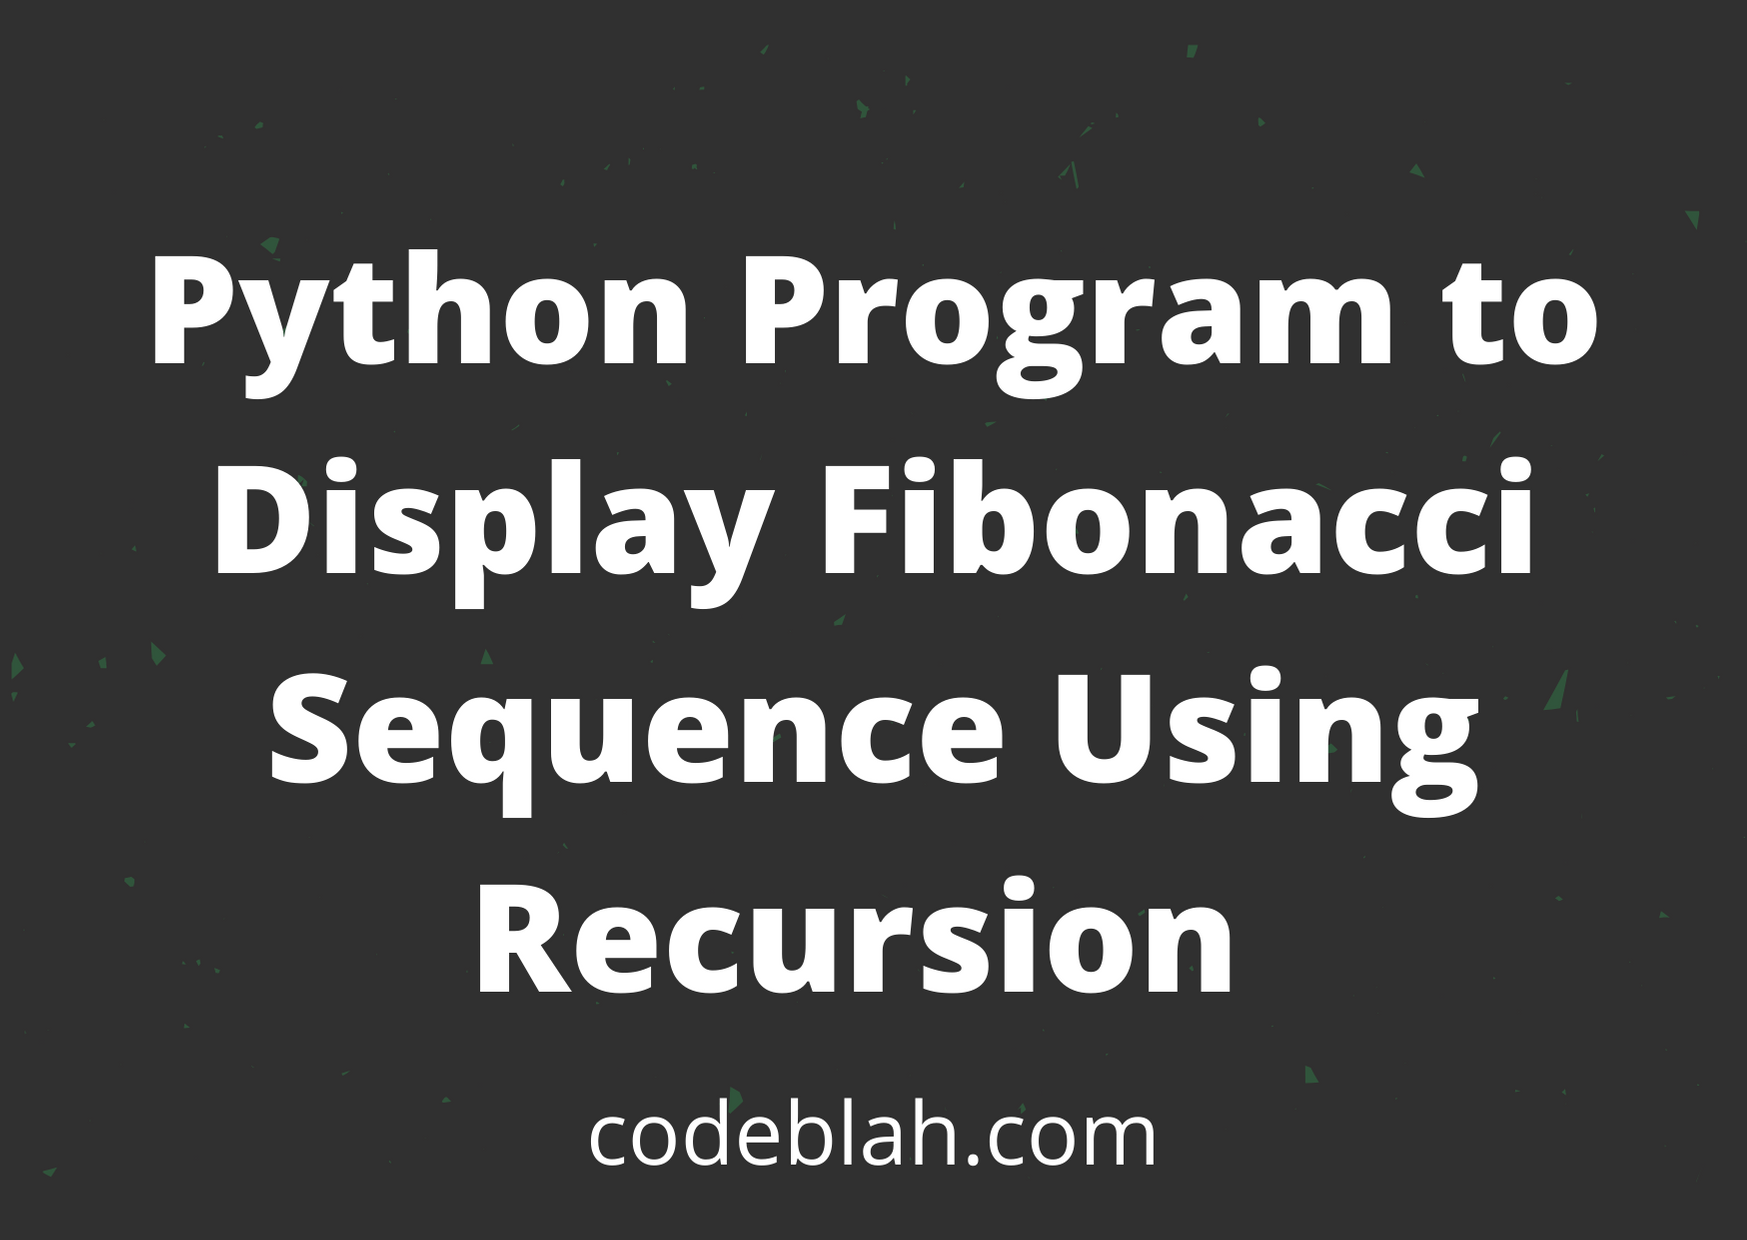 Python Program to Display Fibonacci Sequence Using Recursion